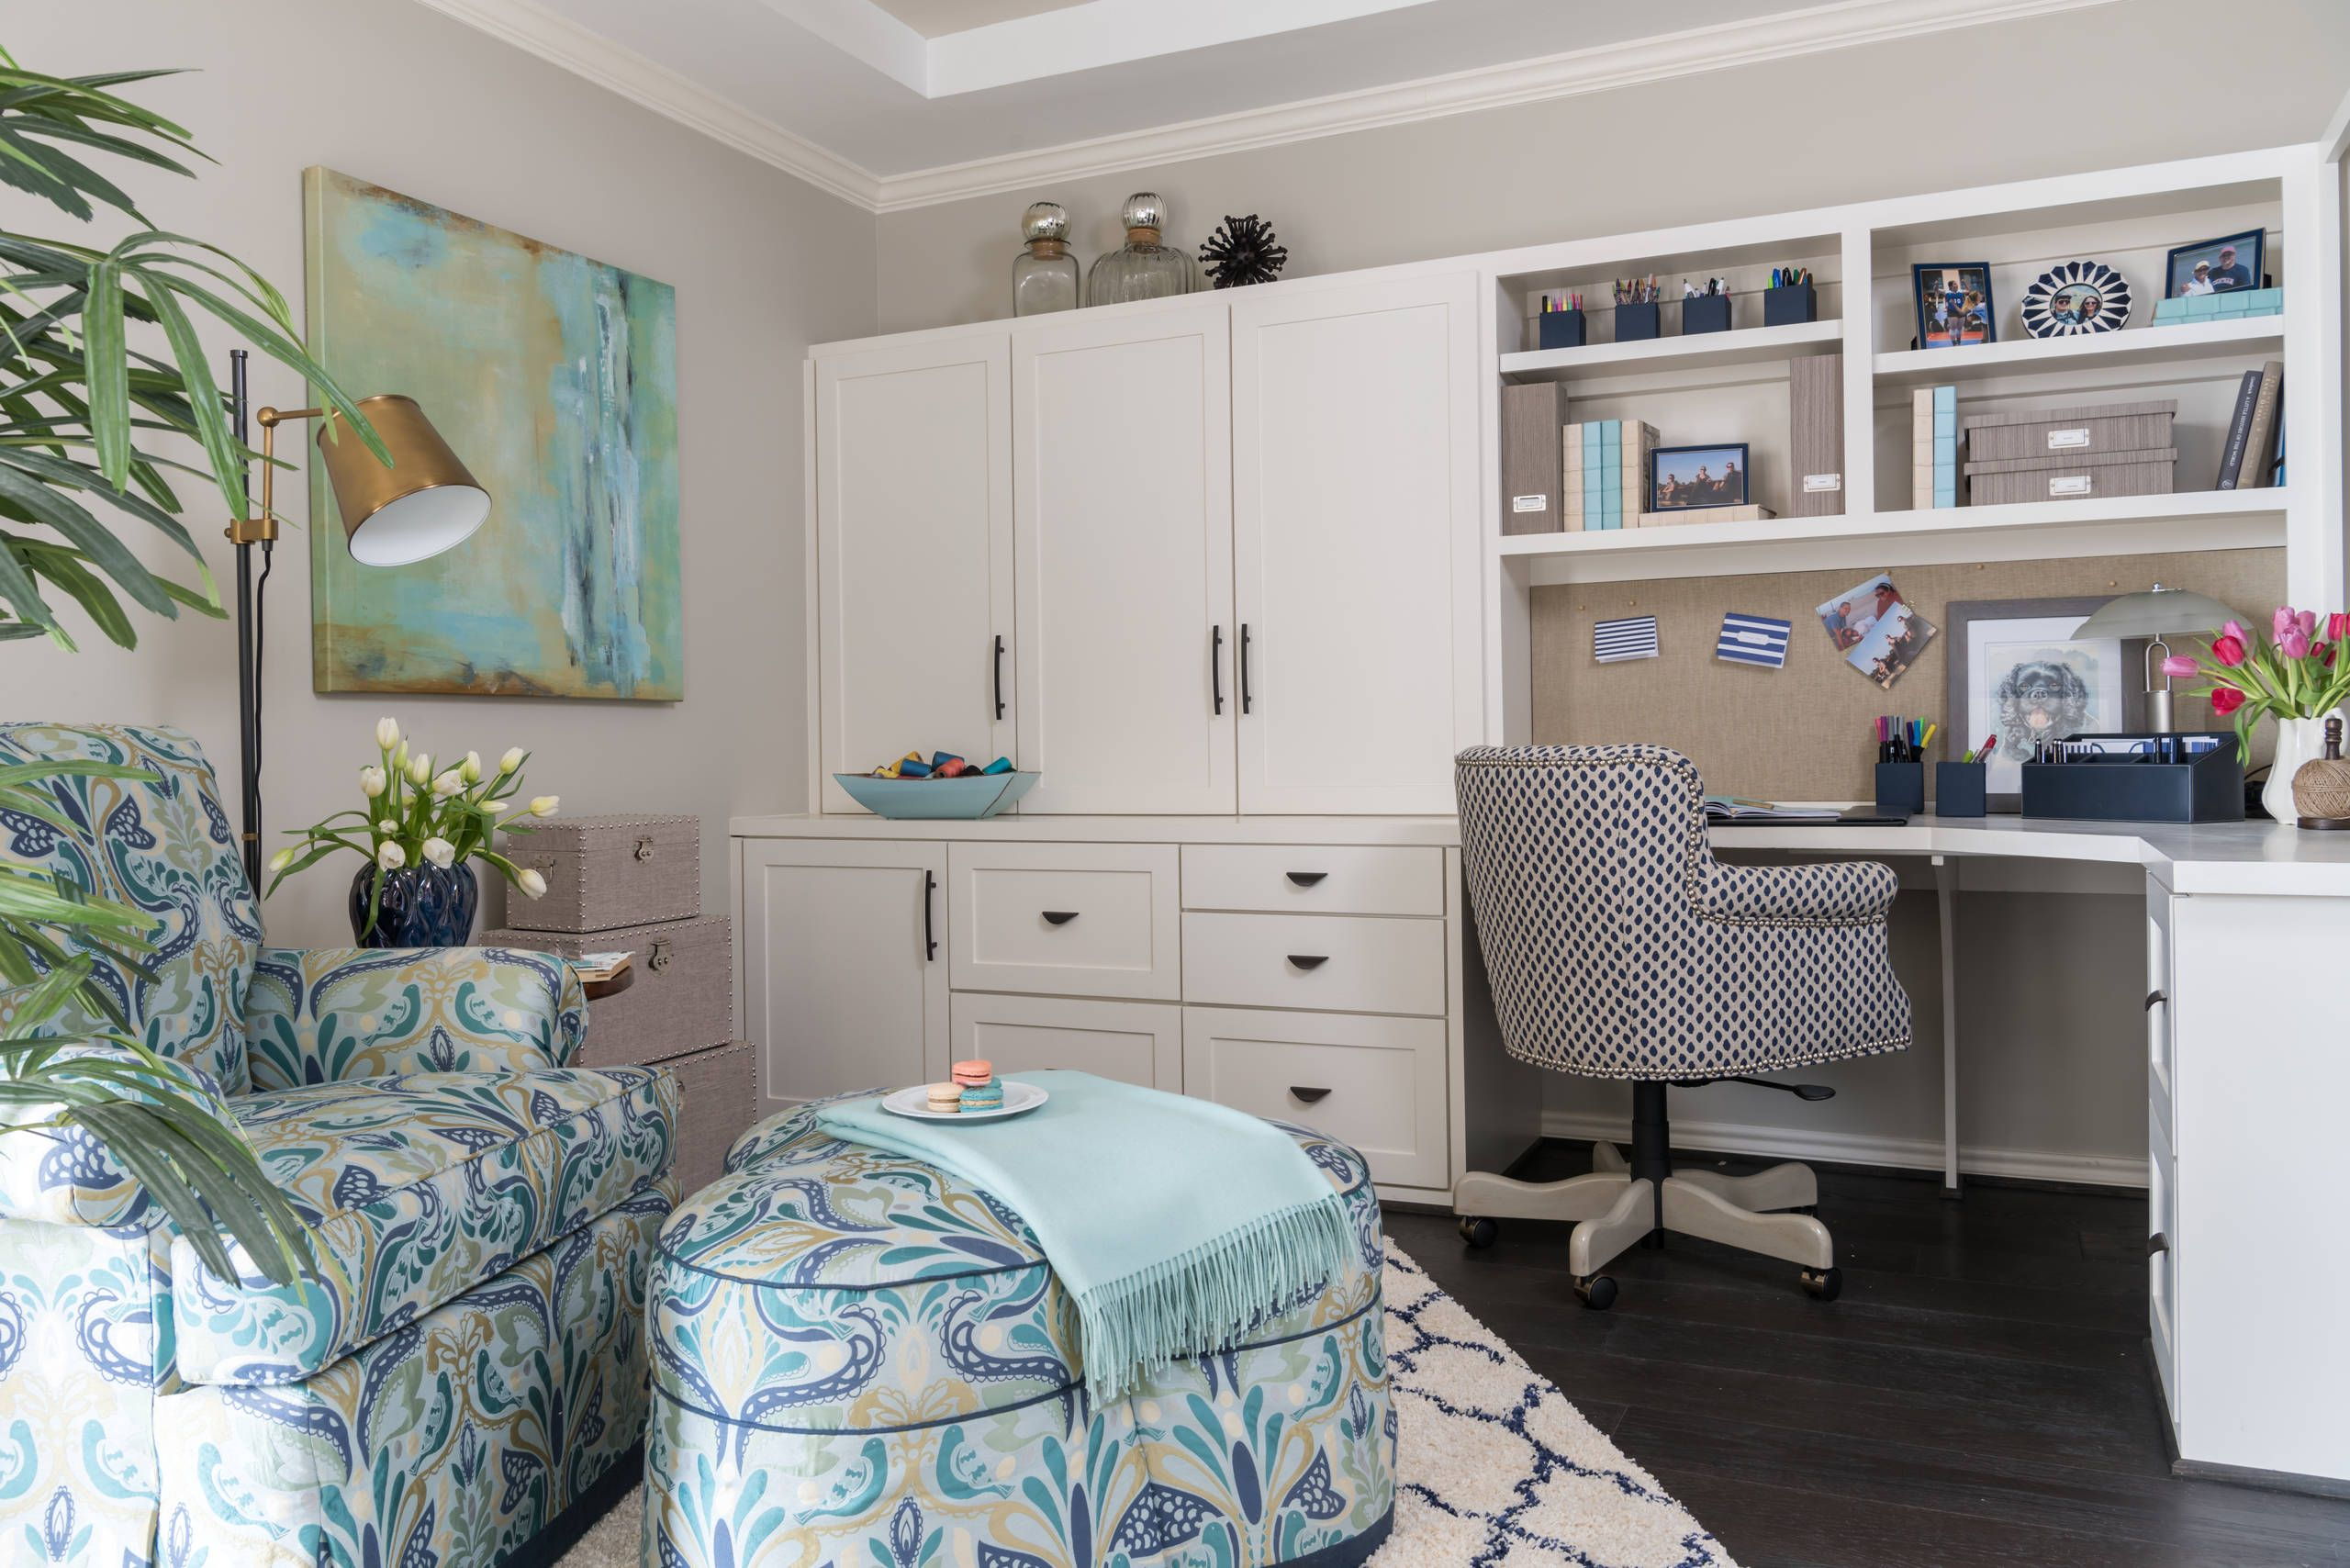 51 Functional Home fice Designs